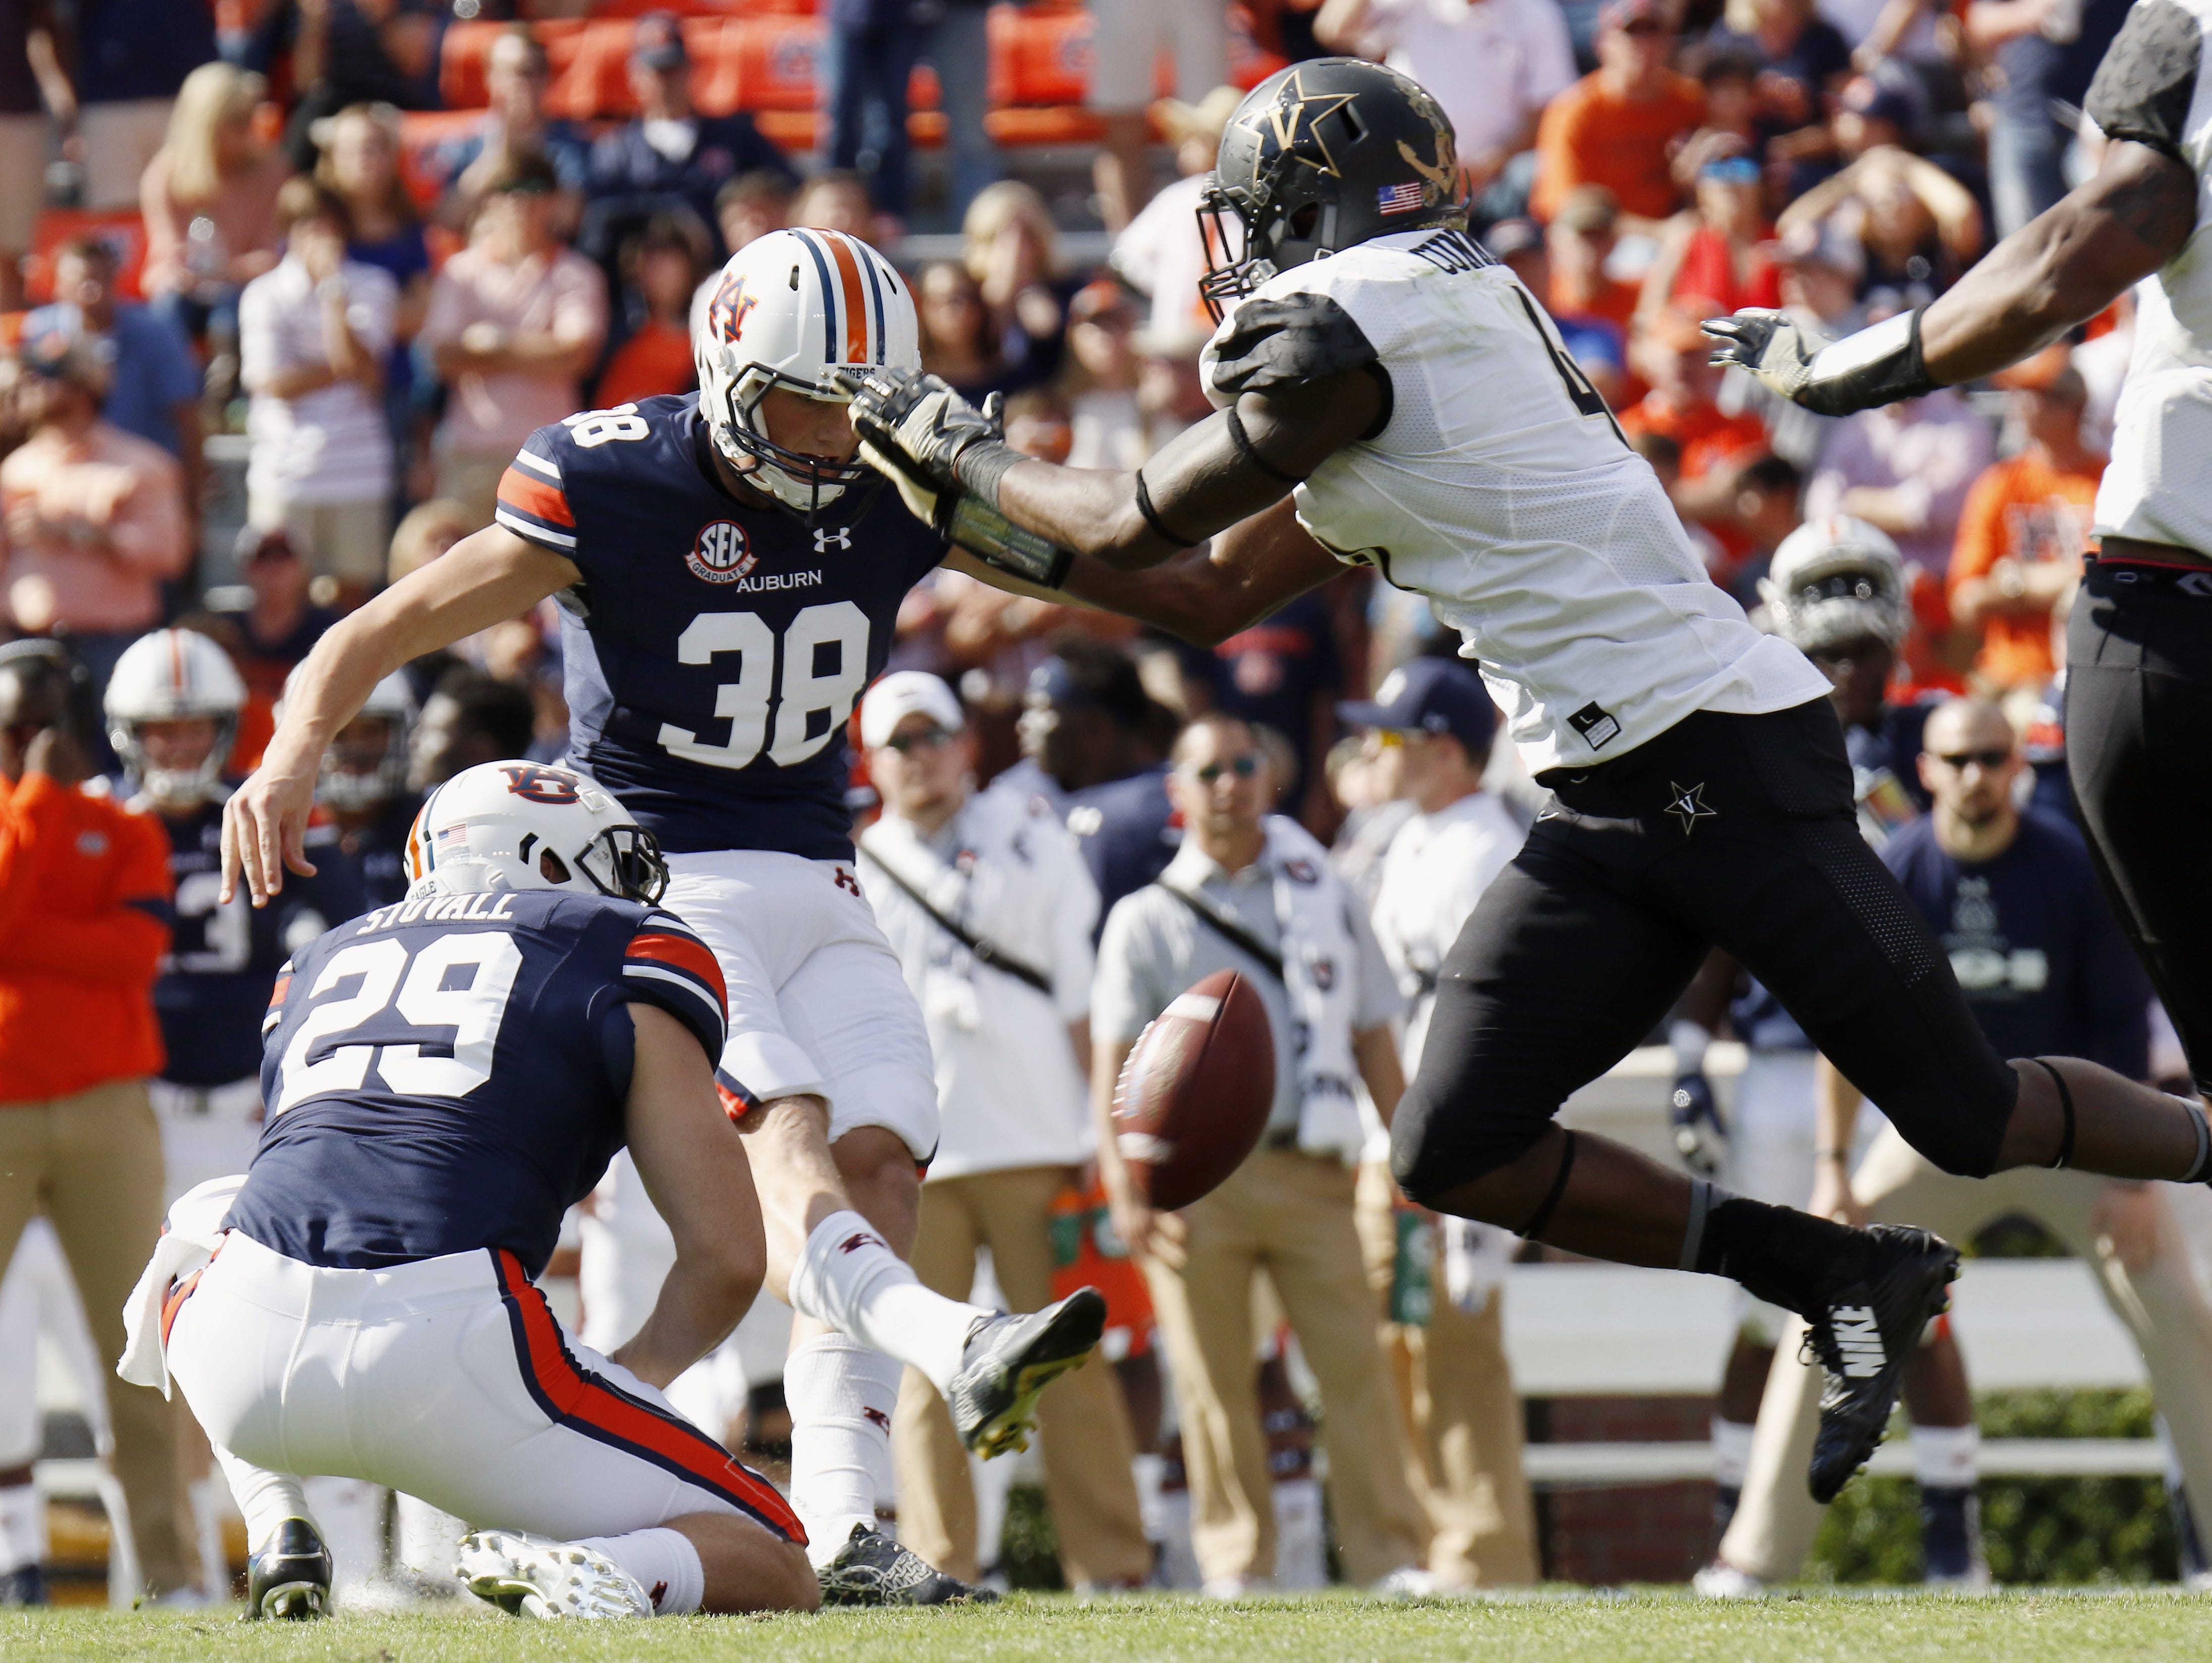 Zach Cunningham, right, blocks a field goal attempt of Auburn's Daniel Carlson after he hurdled the line on Nov. 5, 2016.